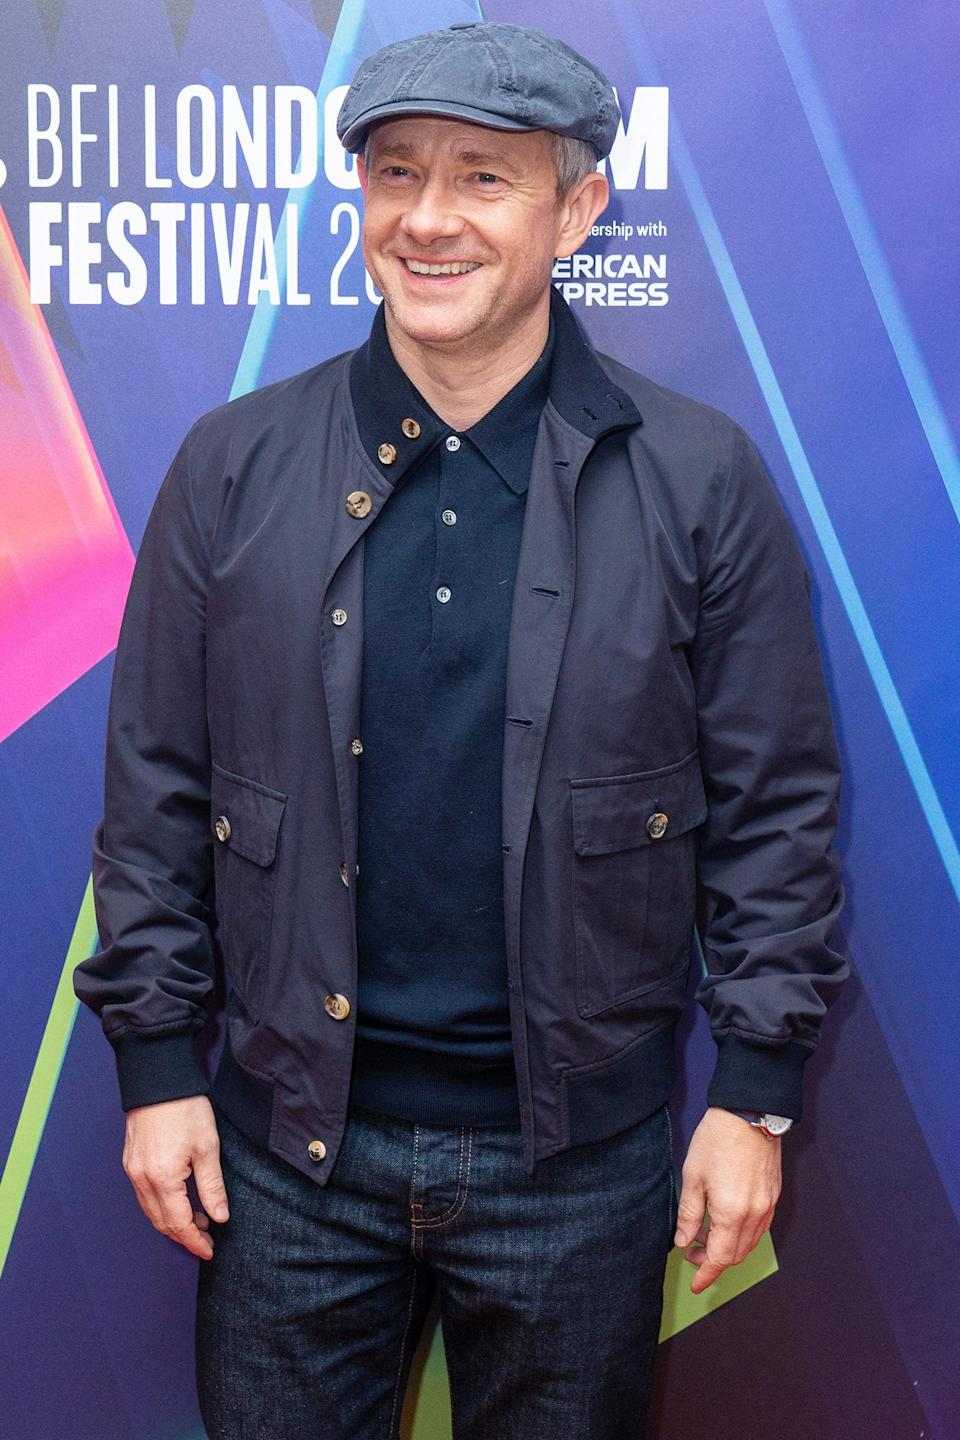 <p>Martin Freeman attends the premiere of <em>Boiling Point</em> at the Odeon Luxe West End cinema in London on Oct. 11.</p>